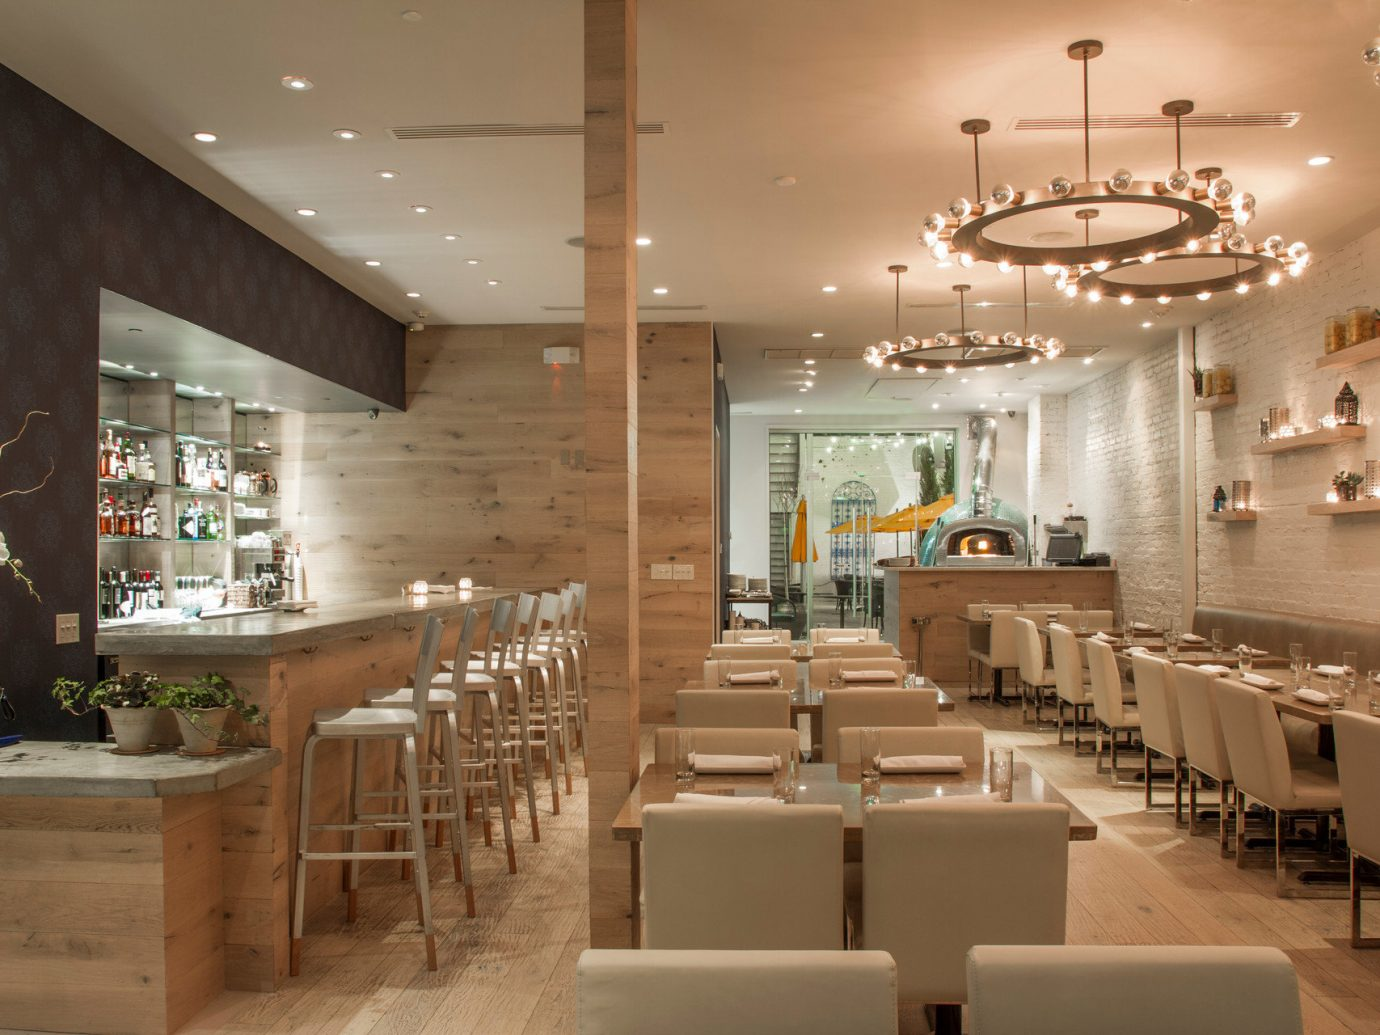 Boutique Hotels Hotels Trip Ideas indoor wall ceiling chair floor room Lobby restaurant interior design lighting meal function hall Design retail furniture area several dining room